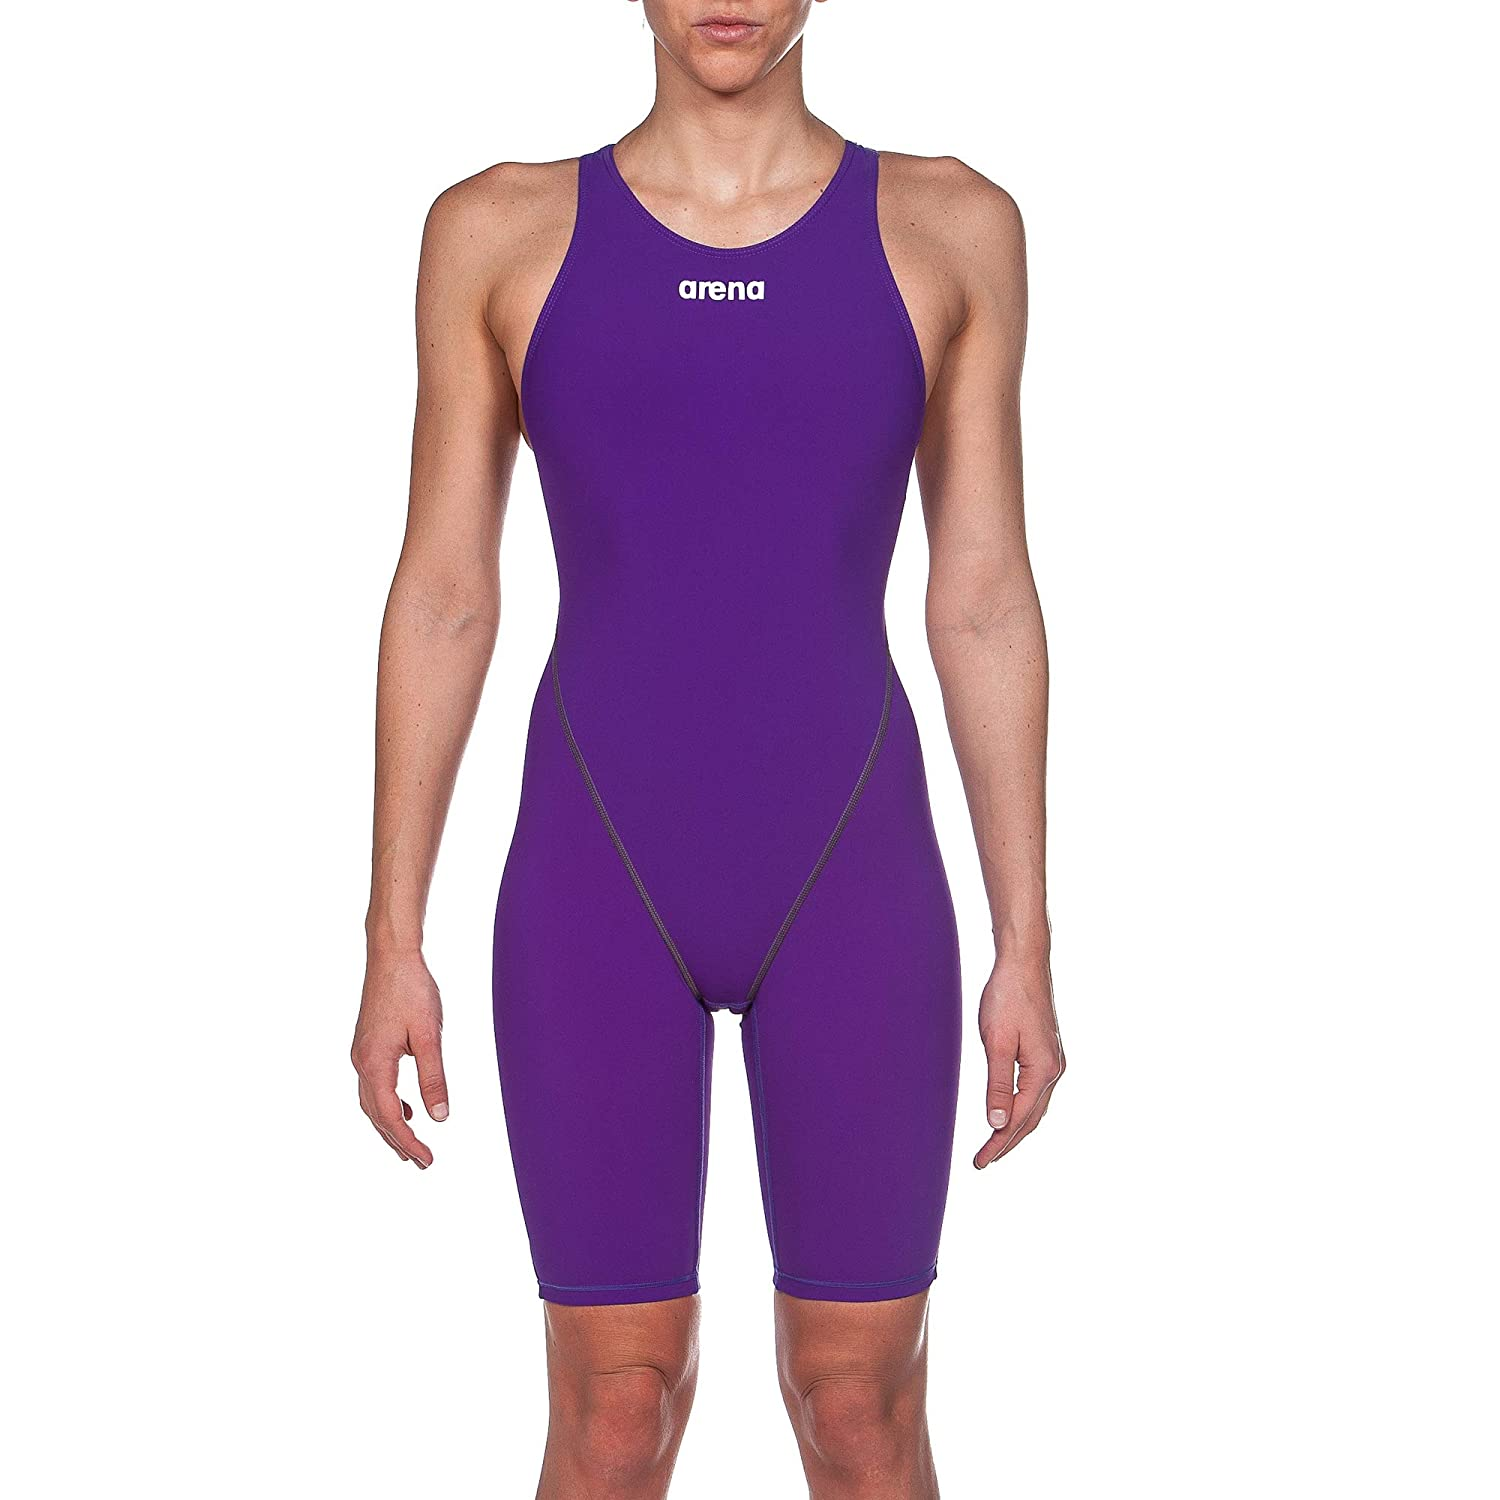 Purple arena Powerskin ST 2.0 Women's One Piece Open Back Racing Swimsuit